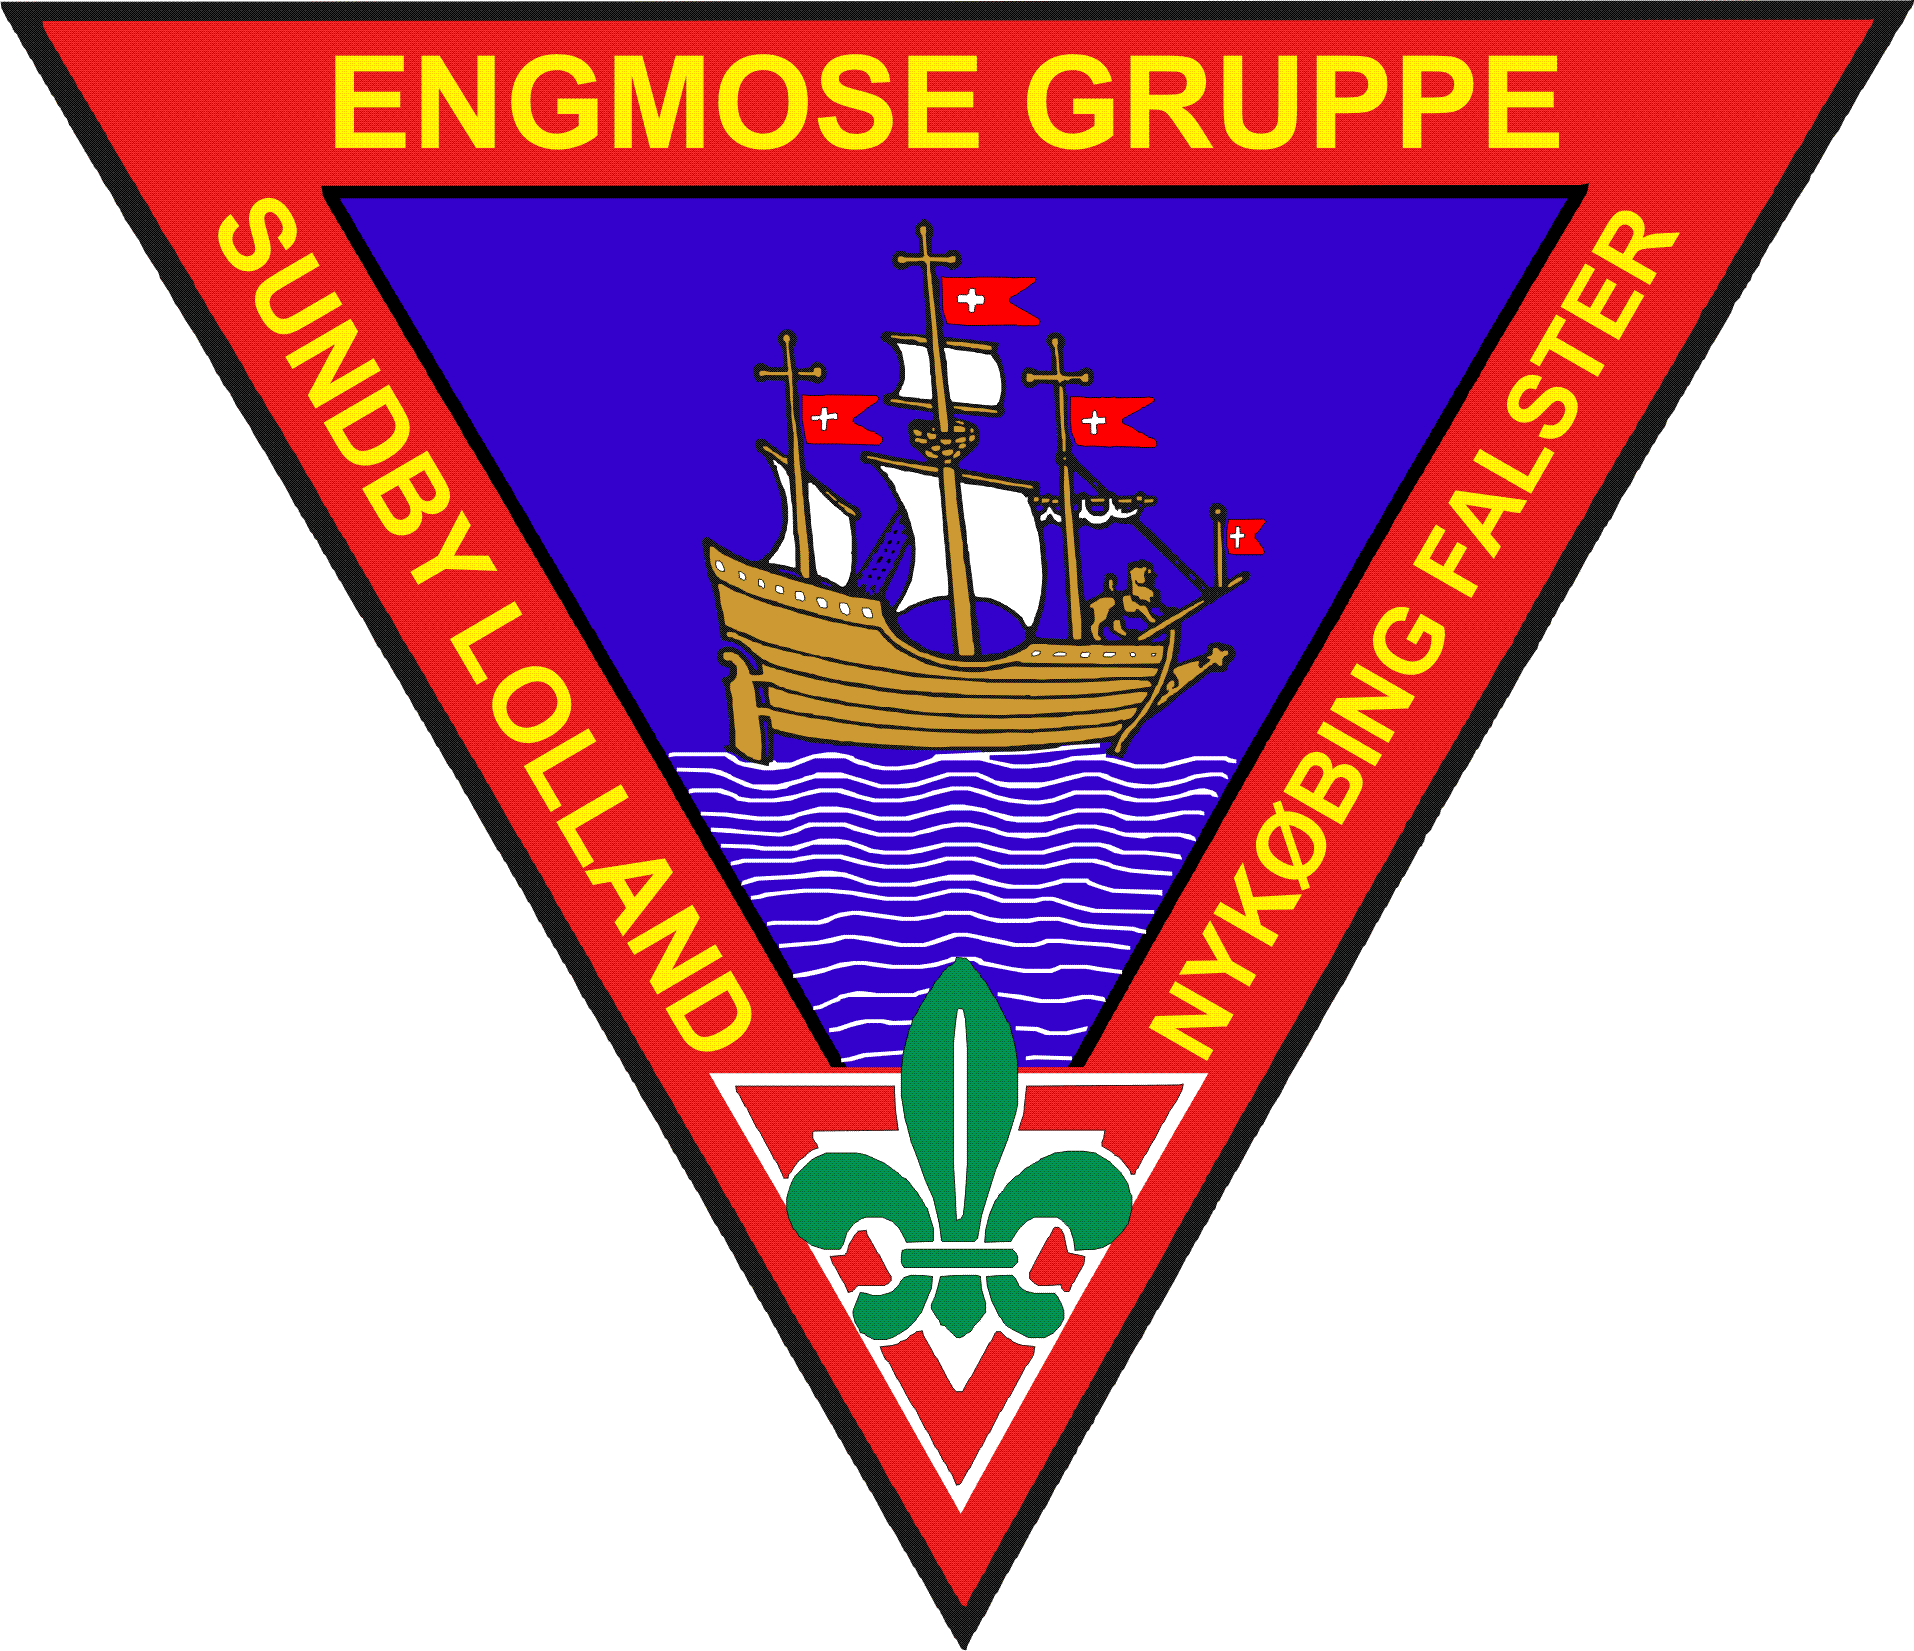 Engmose Gruppe